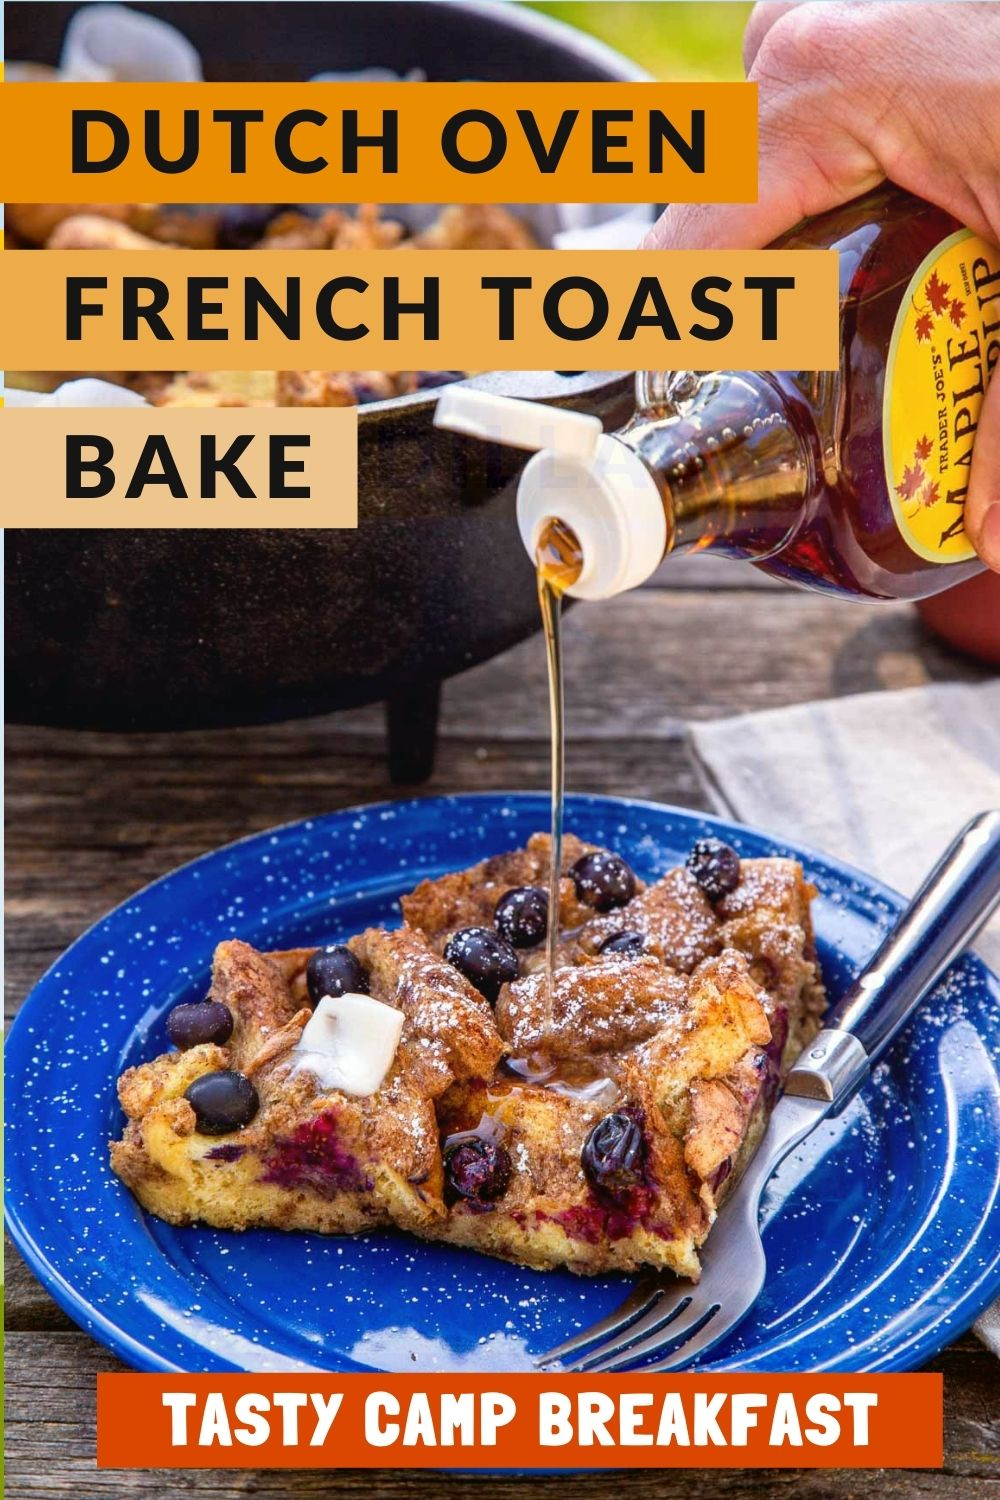 This Dutch Oven French Toast is an awesome camping breakfast! Baked French toast is so easy to make over the campfire and it's a great option if you're cooking for a group. Click through to get the full recipe! Camping food | Dutch oven camping meal via @freshoffthegrid